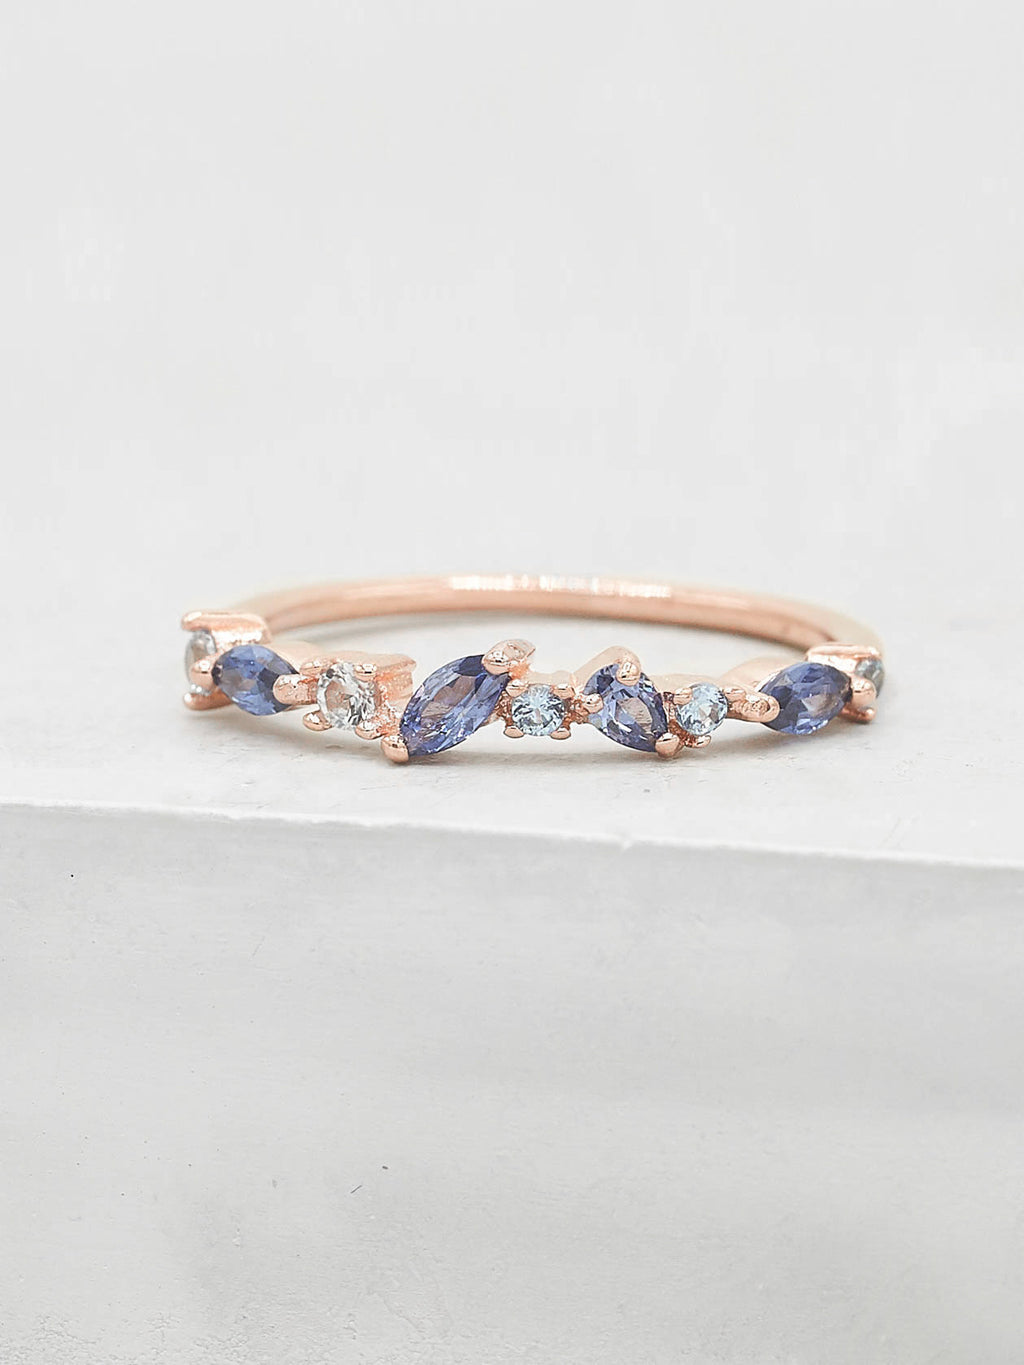 Rose Gold Plated Cluster design with Blue Oval, Round and Pear shape CZ Ring by The Faint Hearted Jewelry